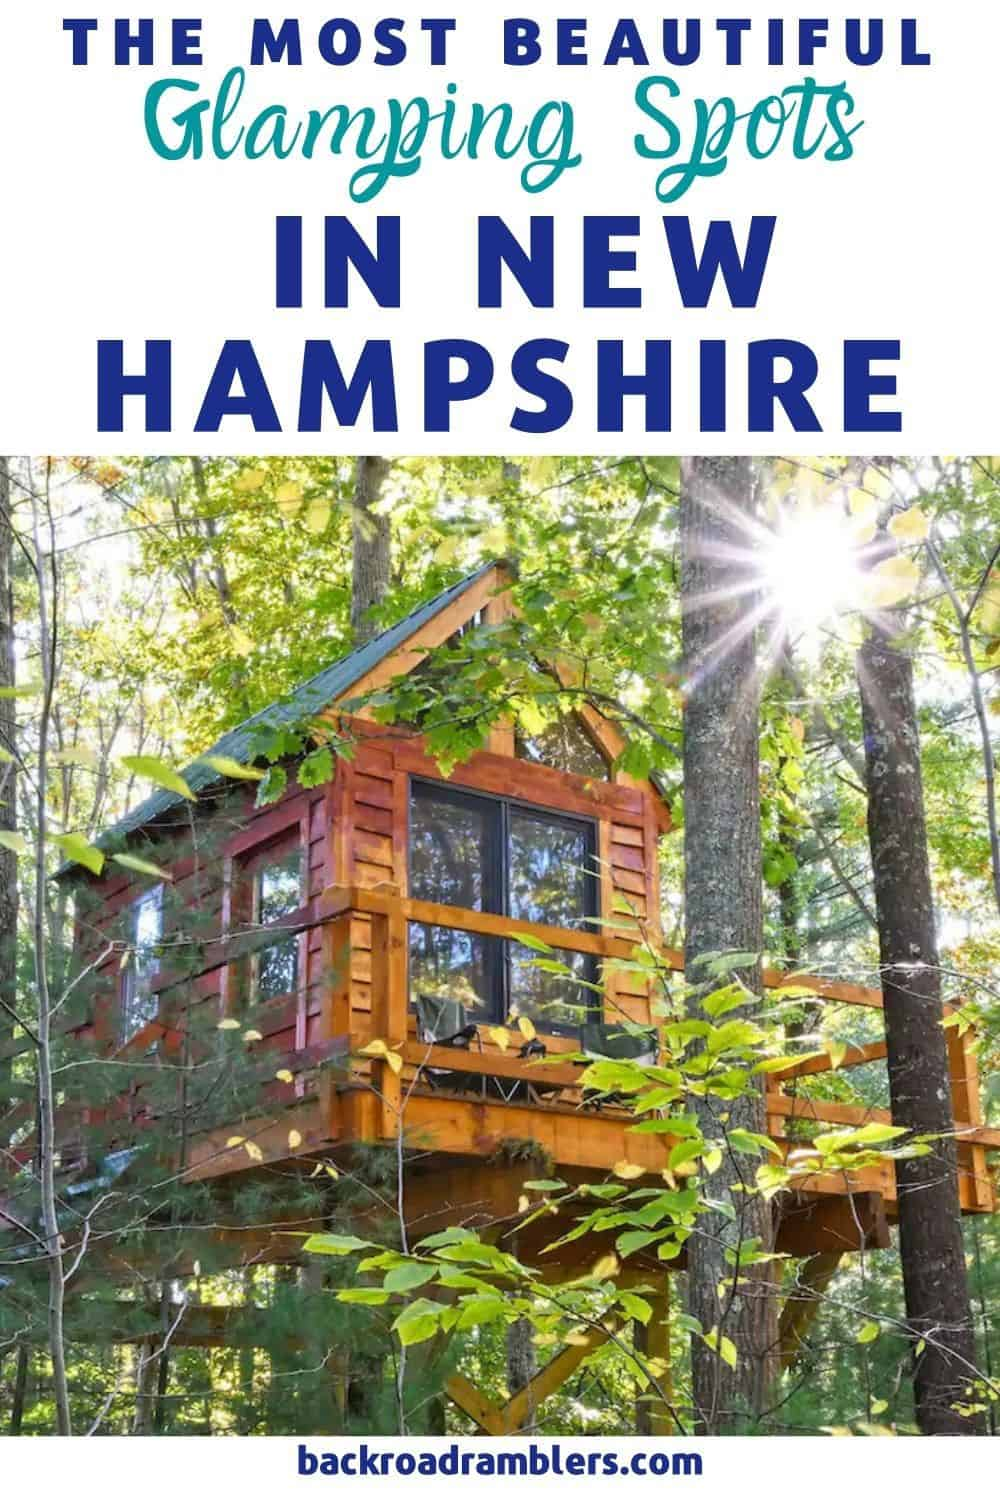 A treehouse in New Hampshire. Photo source: Airbnb